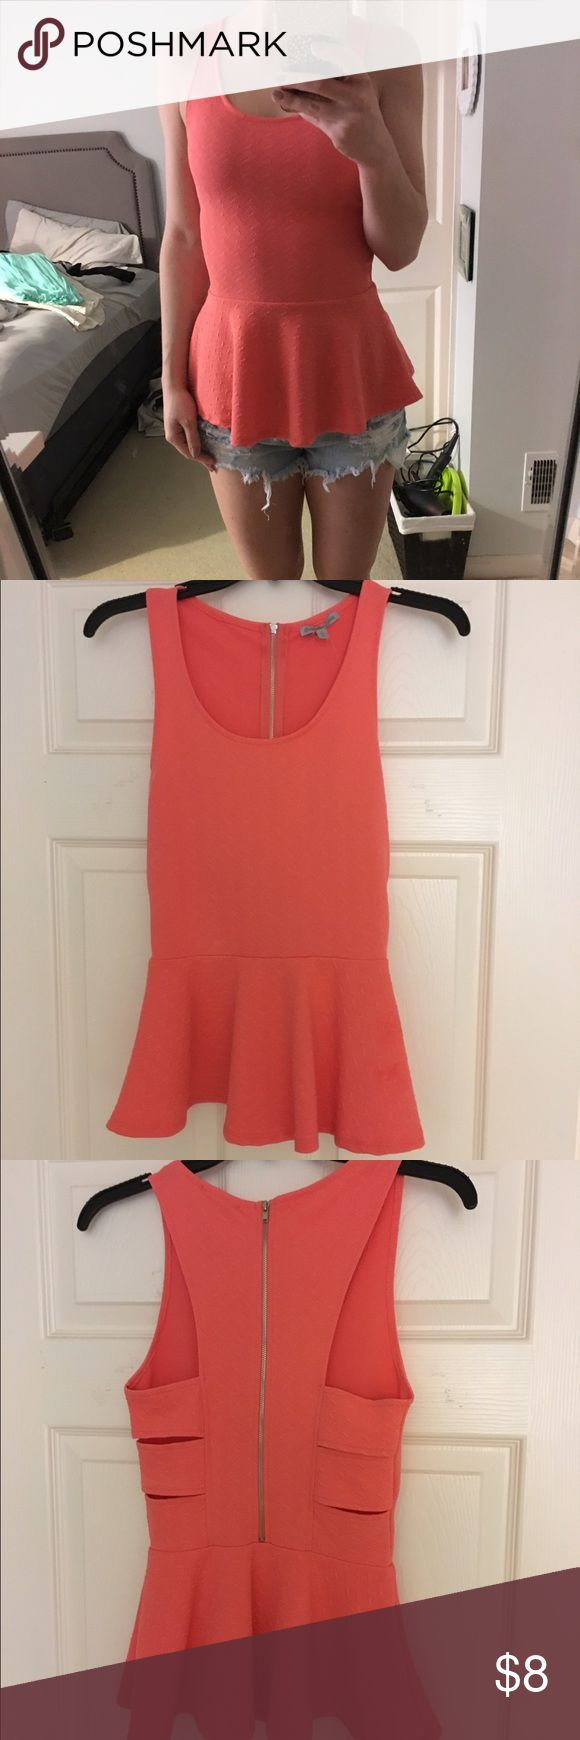 CHARLOTTE RUSSE Peplum Top Charlotte Ruse Peplum Tank ▪️Bright Coral Color ▪️Textured Fabric ▪️Bandage Back Detail/Subtle Cutouts ▪️Platinum Metal Zipper ▪️Brand New w Tags ▪️Looks great with jean shorts or pants ▪️Very figure flattering/bodycon fit ▪️Fits true to size (I'm a 34B/ 124 Lbs) Charlotte Russe Tops Tank Tops